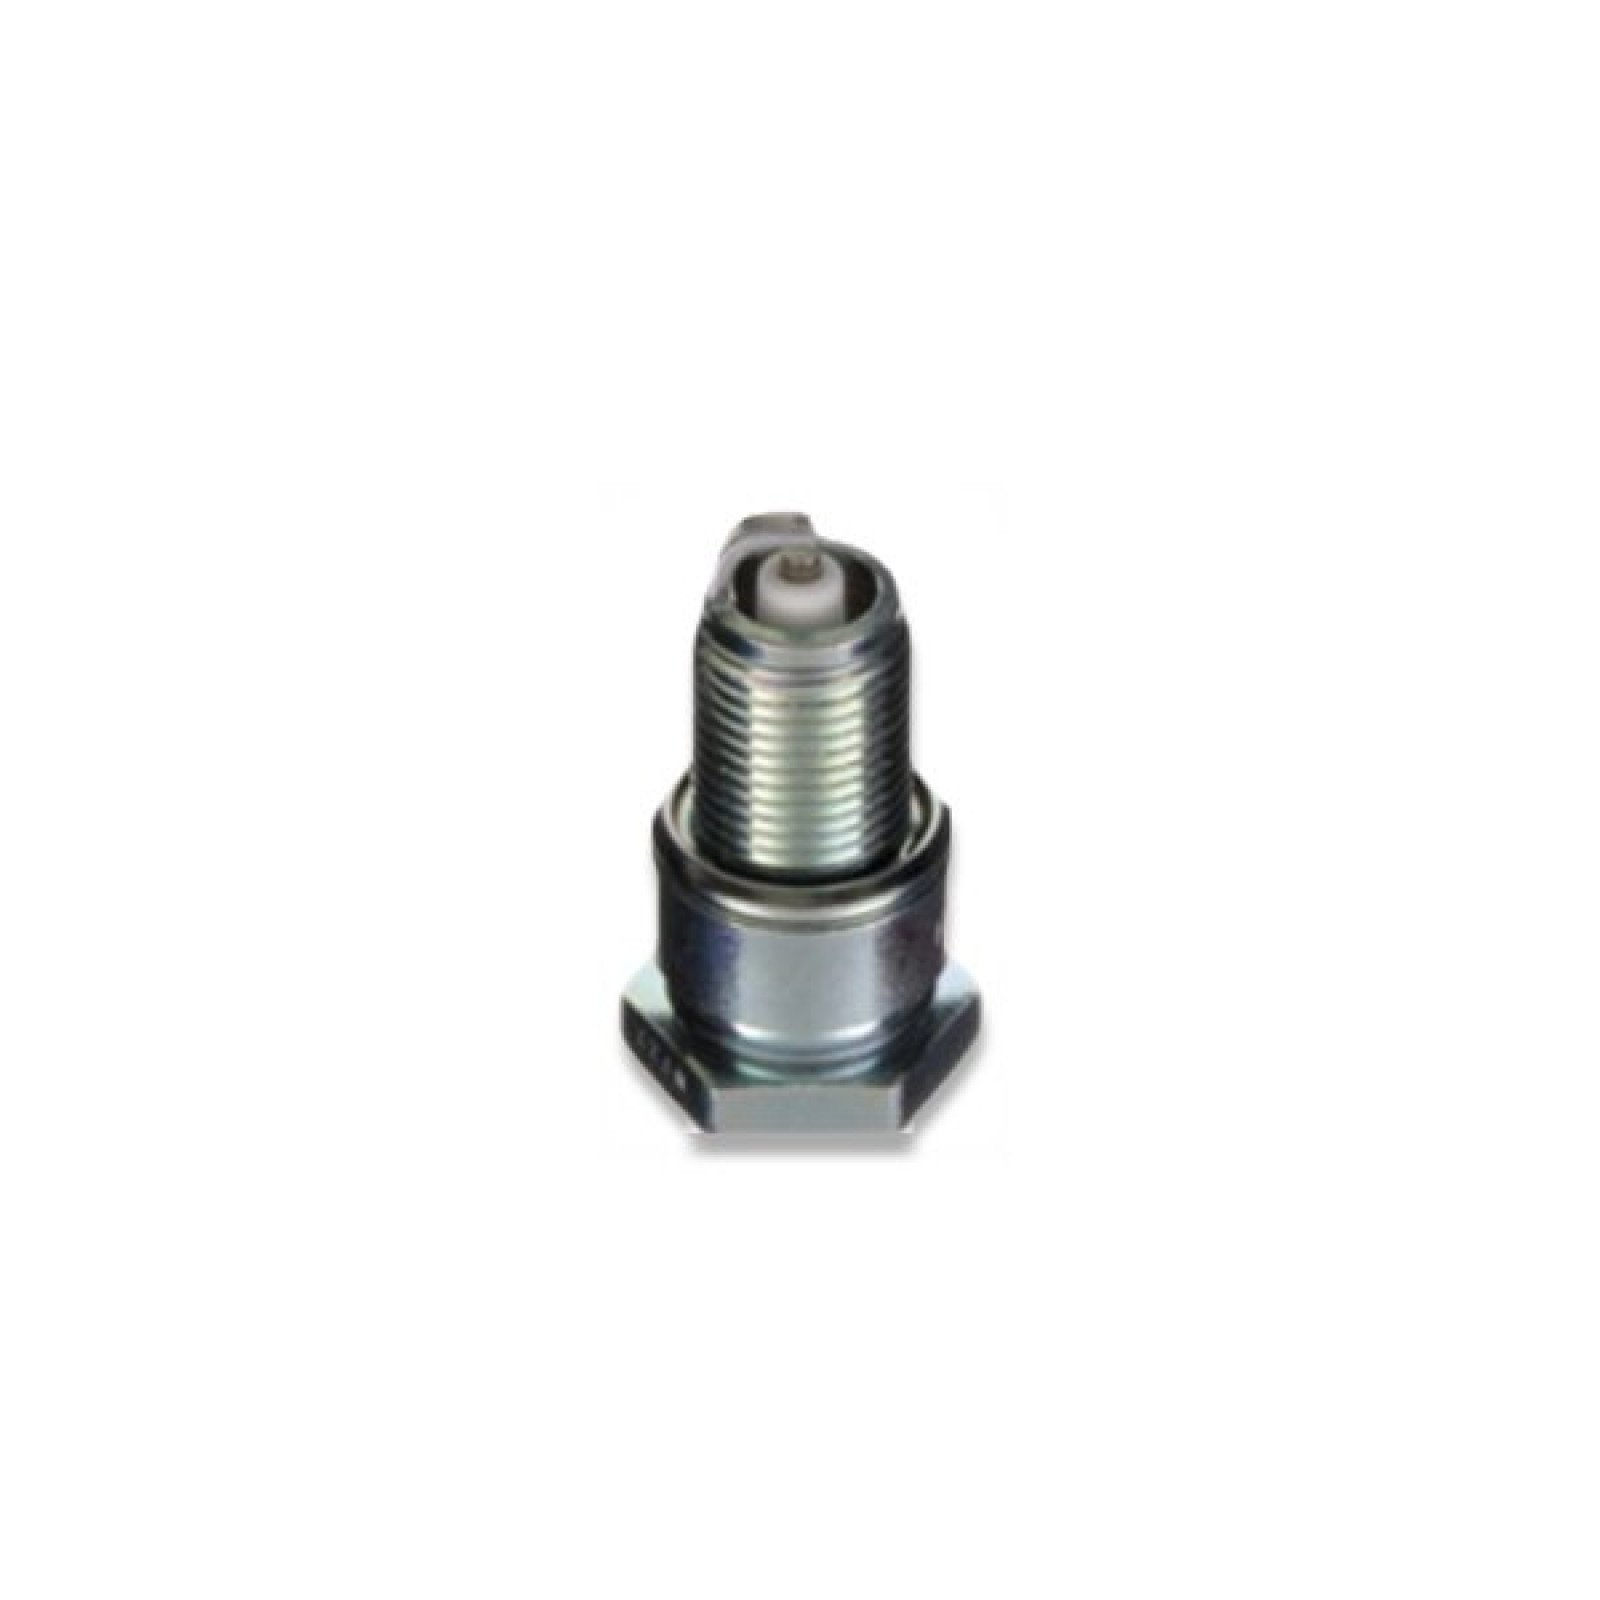 Mercedes benz 107 280sl v8 ngk spark plug the sl shop for Mercedes benz glow plugs